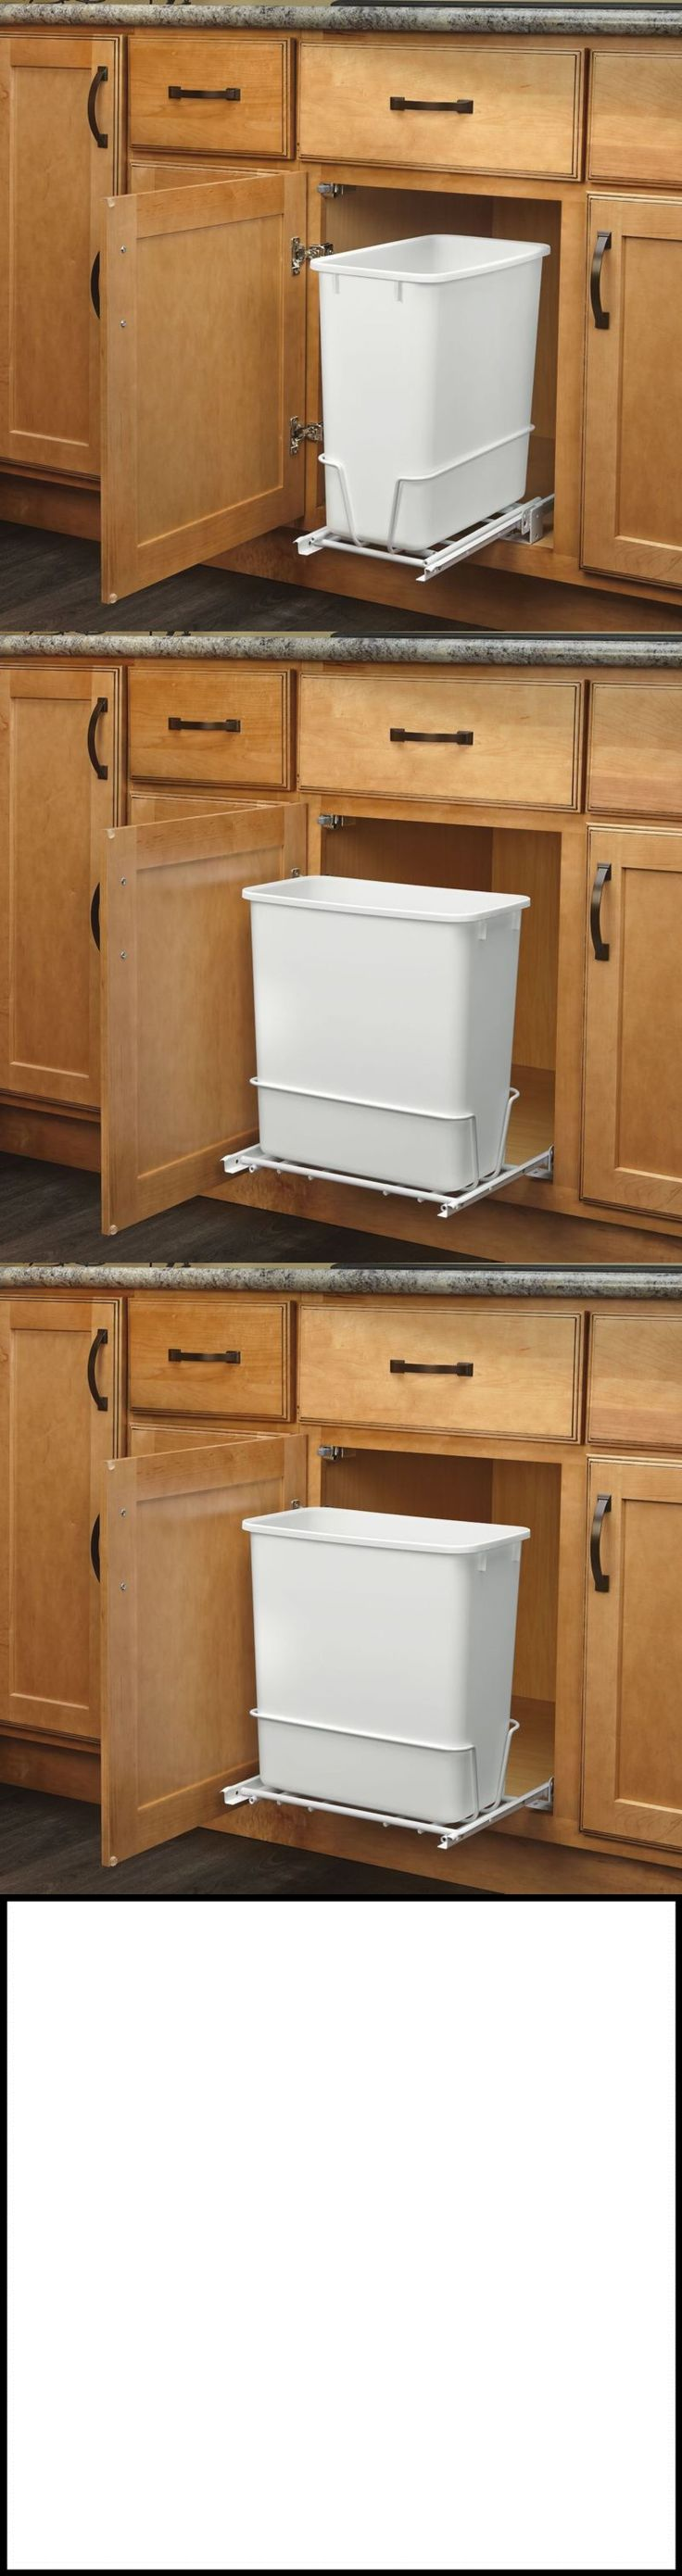 White tilt out clothes storage basket bin bathroom drawer ebay - Trash Cans And Wastebaskets 20608 20 Quart White Trash Can Kitchen Waste Bin Garbage